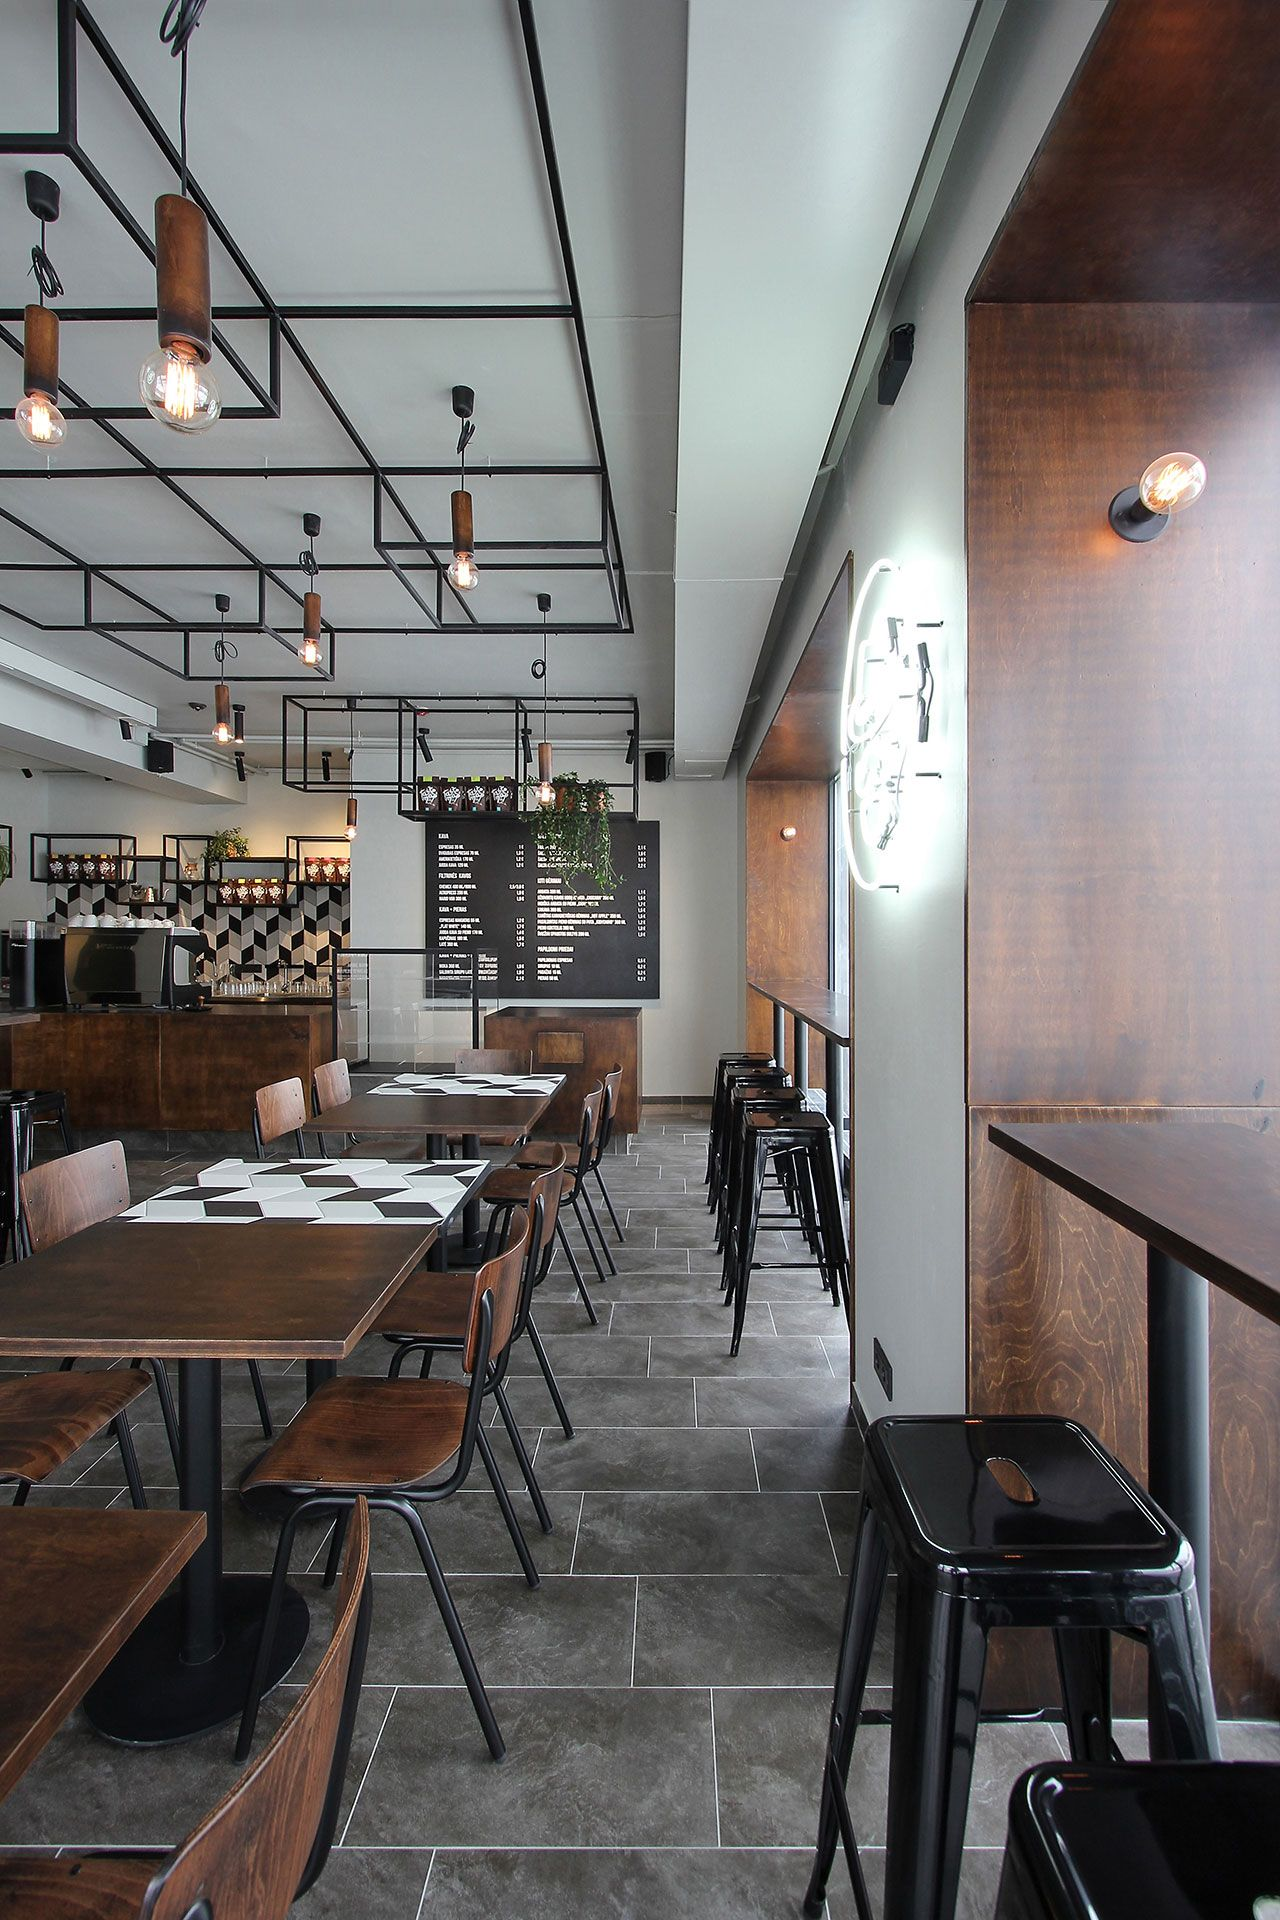 Coffee date kavalierius caf in lithuania by ram nas - Best coffee shop interior design ...